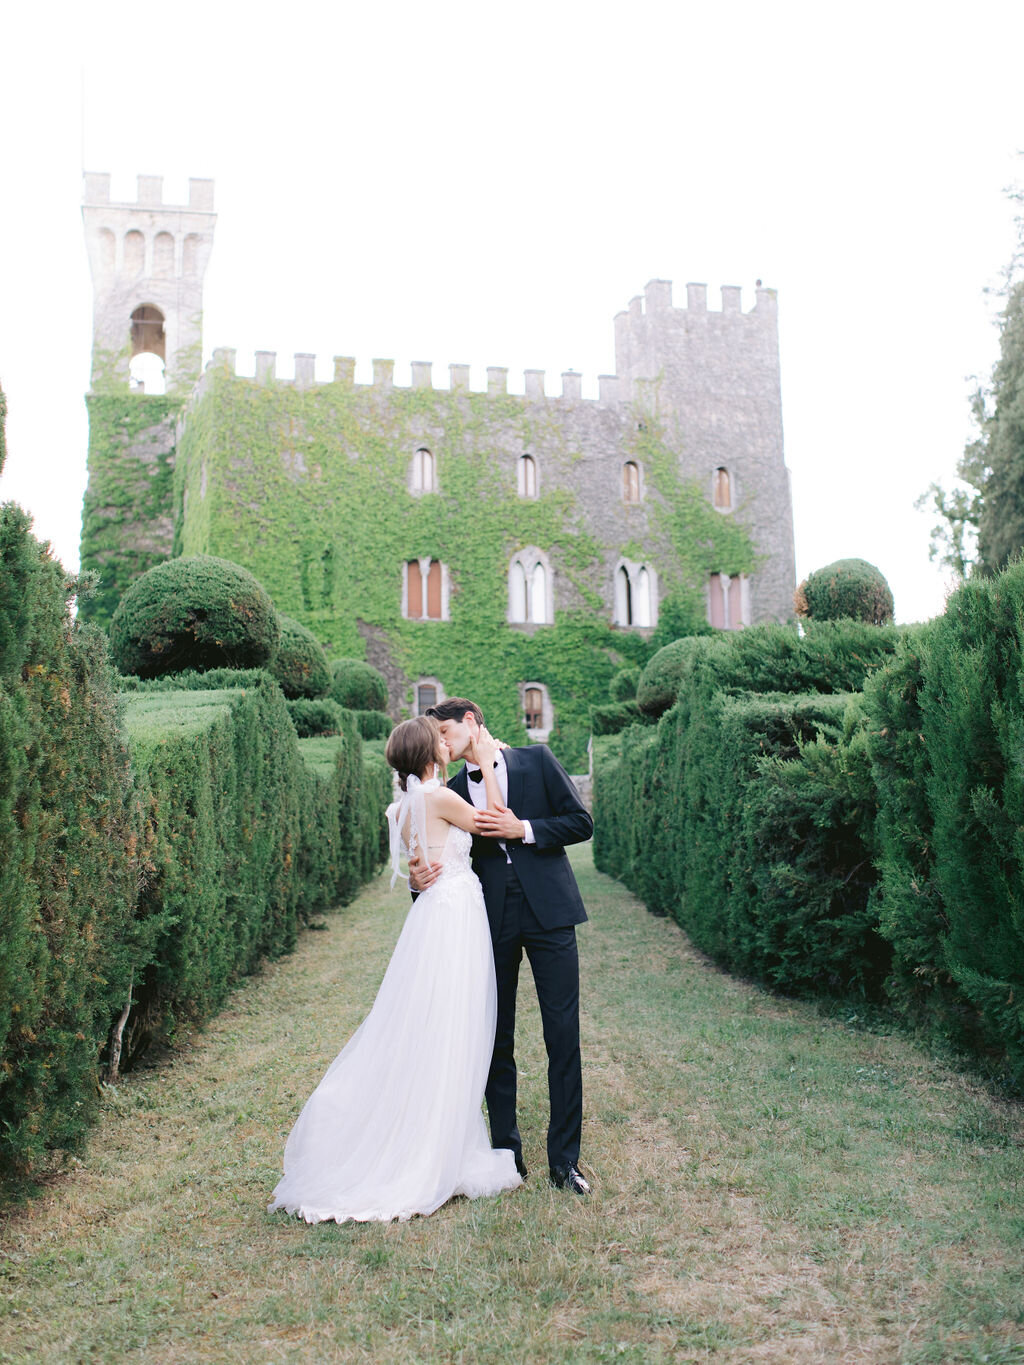 Trine_Juel_hair_and_makeupartist_wedding_Italy_Castello_Di_CelsaQuicksallPhotography_1079